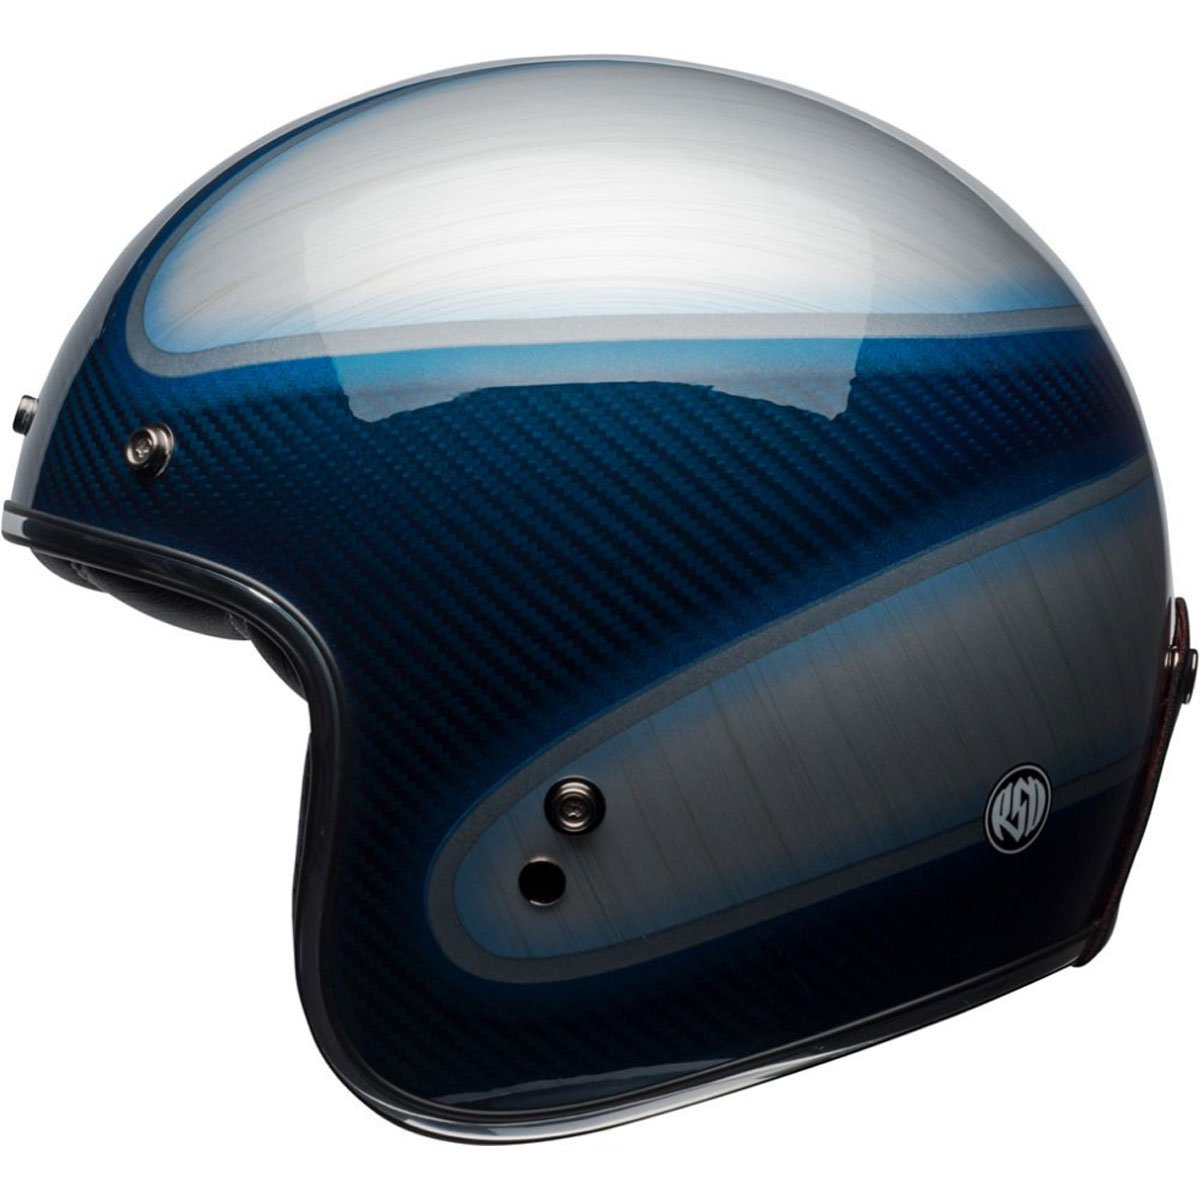 Bell Custom 500 Carbon RSD Jagger Open-Face Motorcycle Helmet (Candy Blue, Small) by Bell (Image #1)